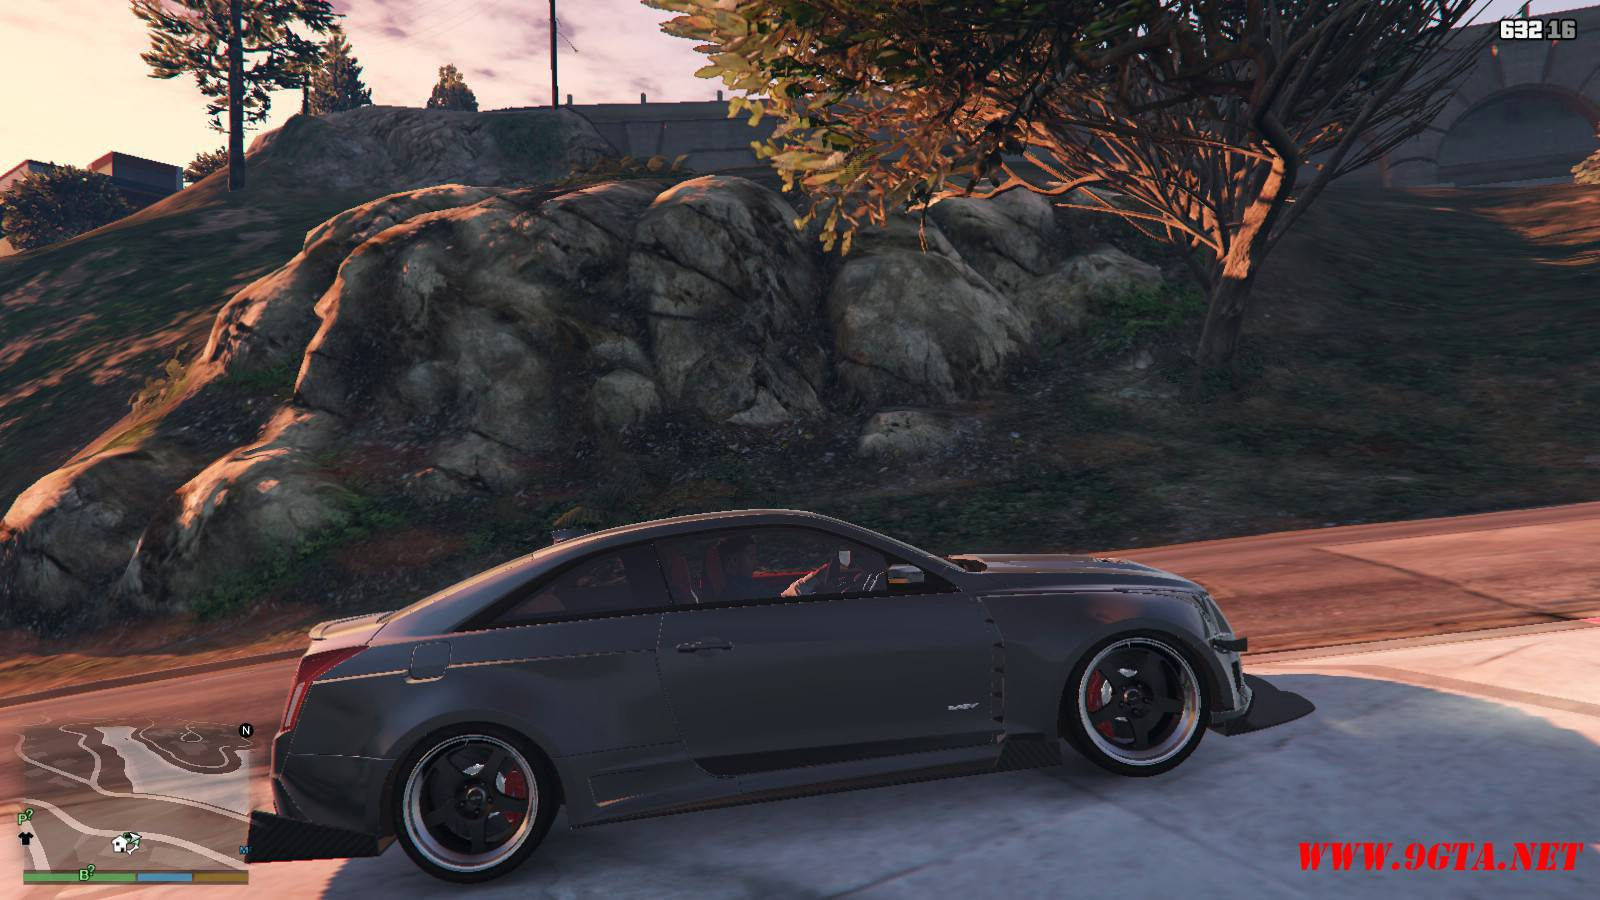 2016 Cadillac ATS-V Forza Edition Mod For GTA5 (7)